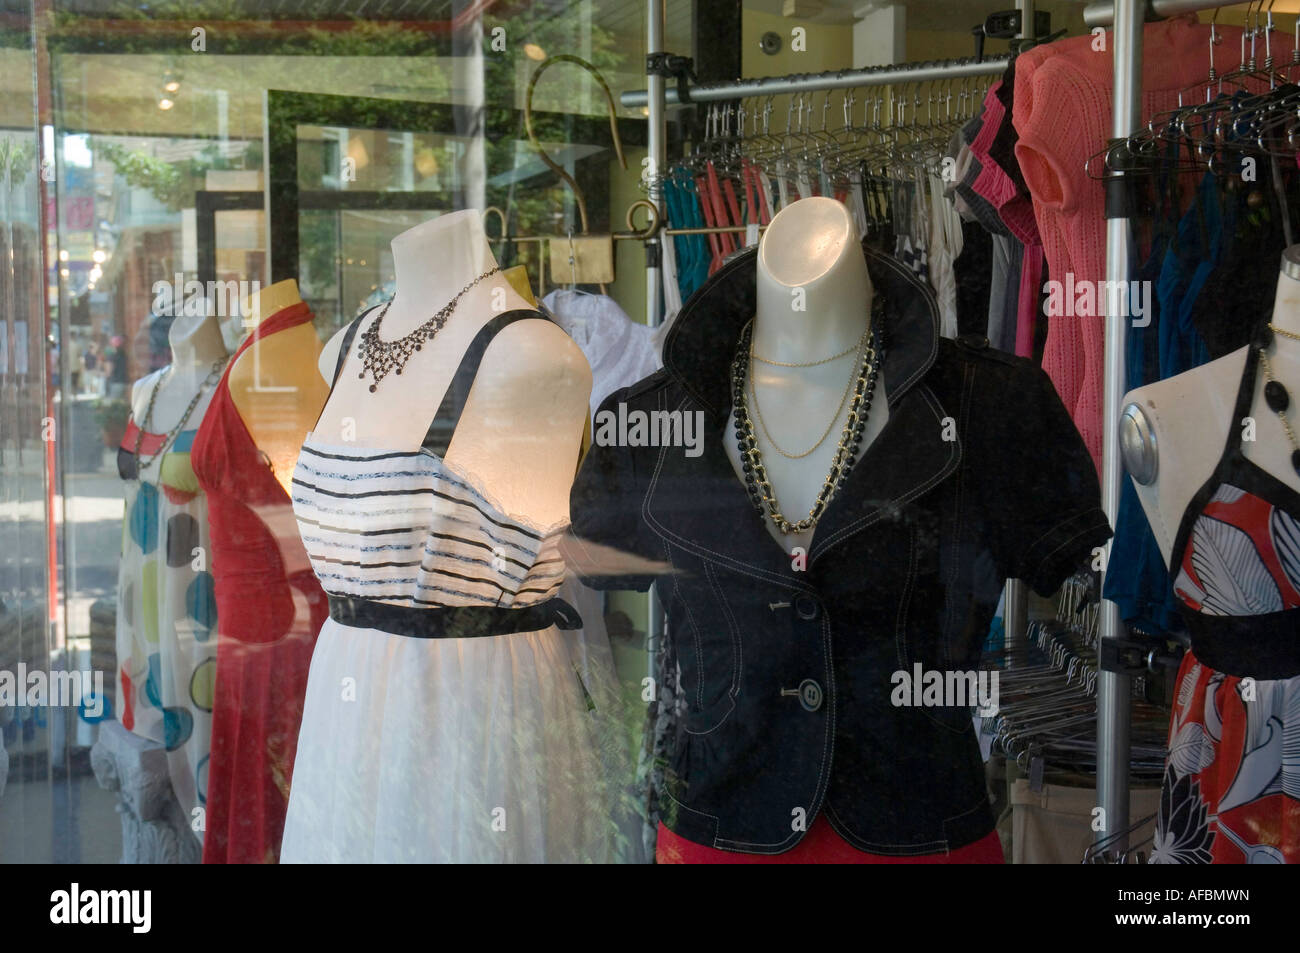 dresses on sale in a boutique in newport rhode island - Stock Image